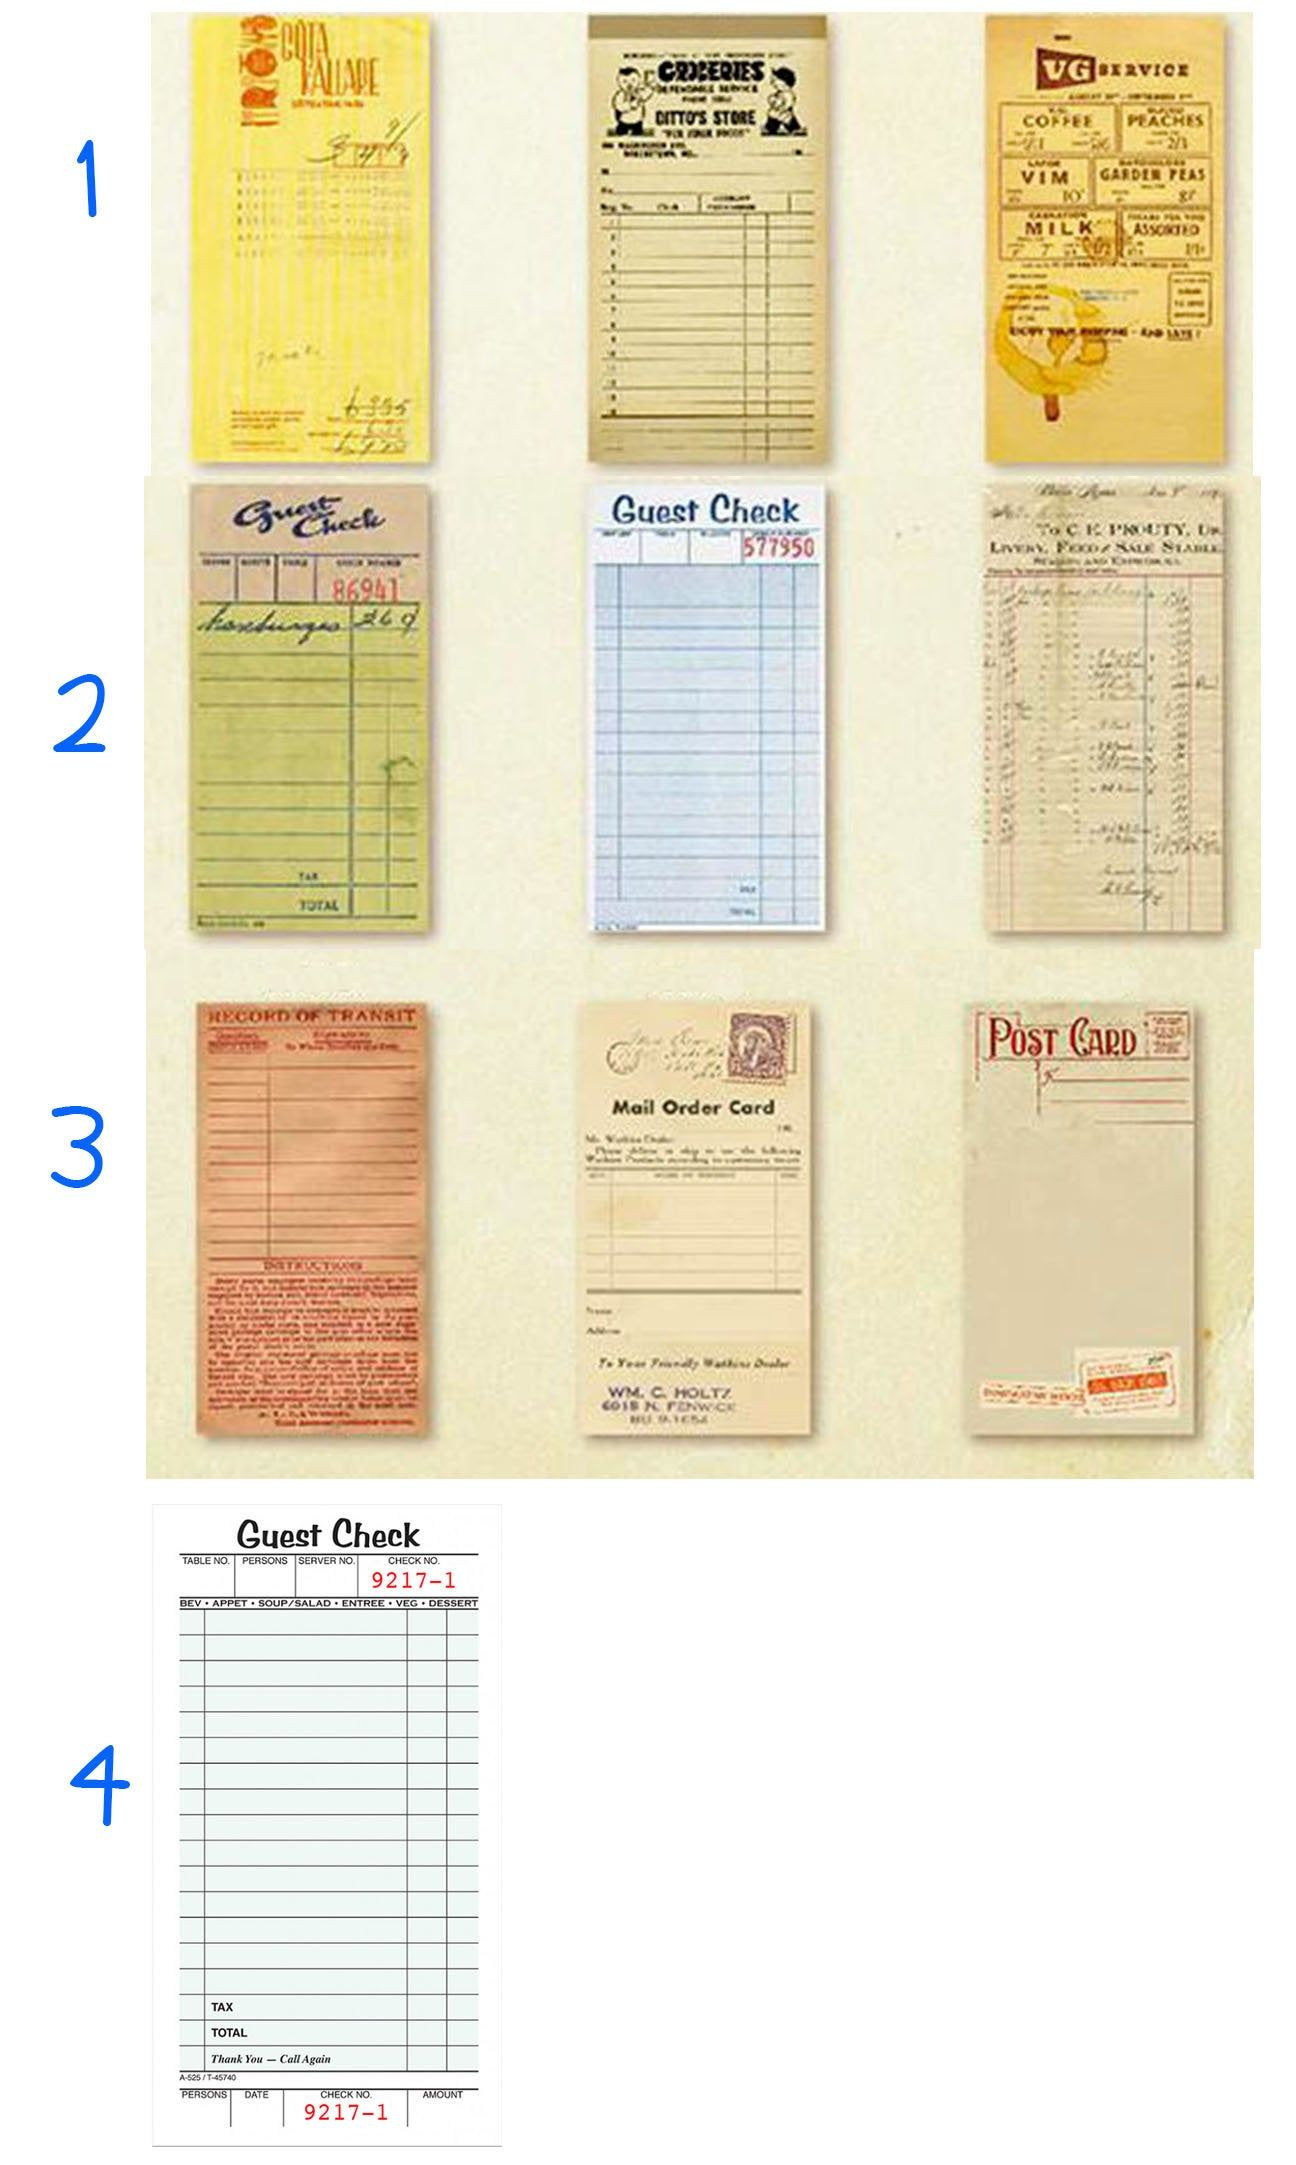 Guest Check Sheets Vintage Forms Pad Shopping Lists Embellishment Supply Paper Notes Scrapbooking Mixed Medi Note Paper Mixed Media Projects Junk Journal